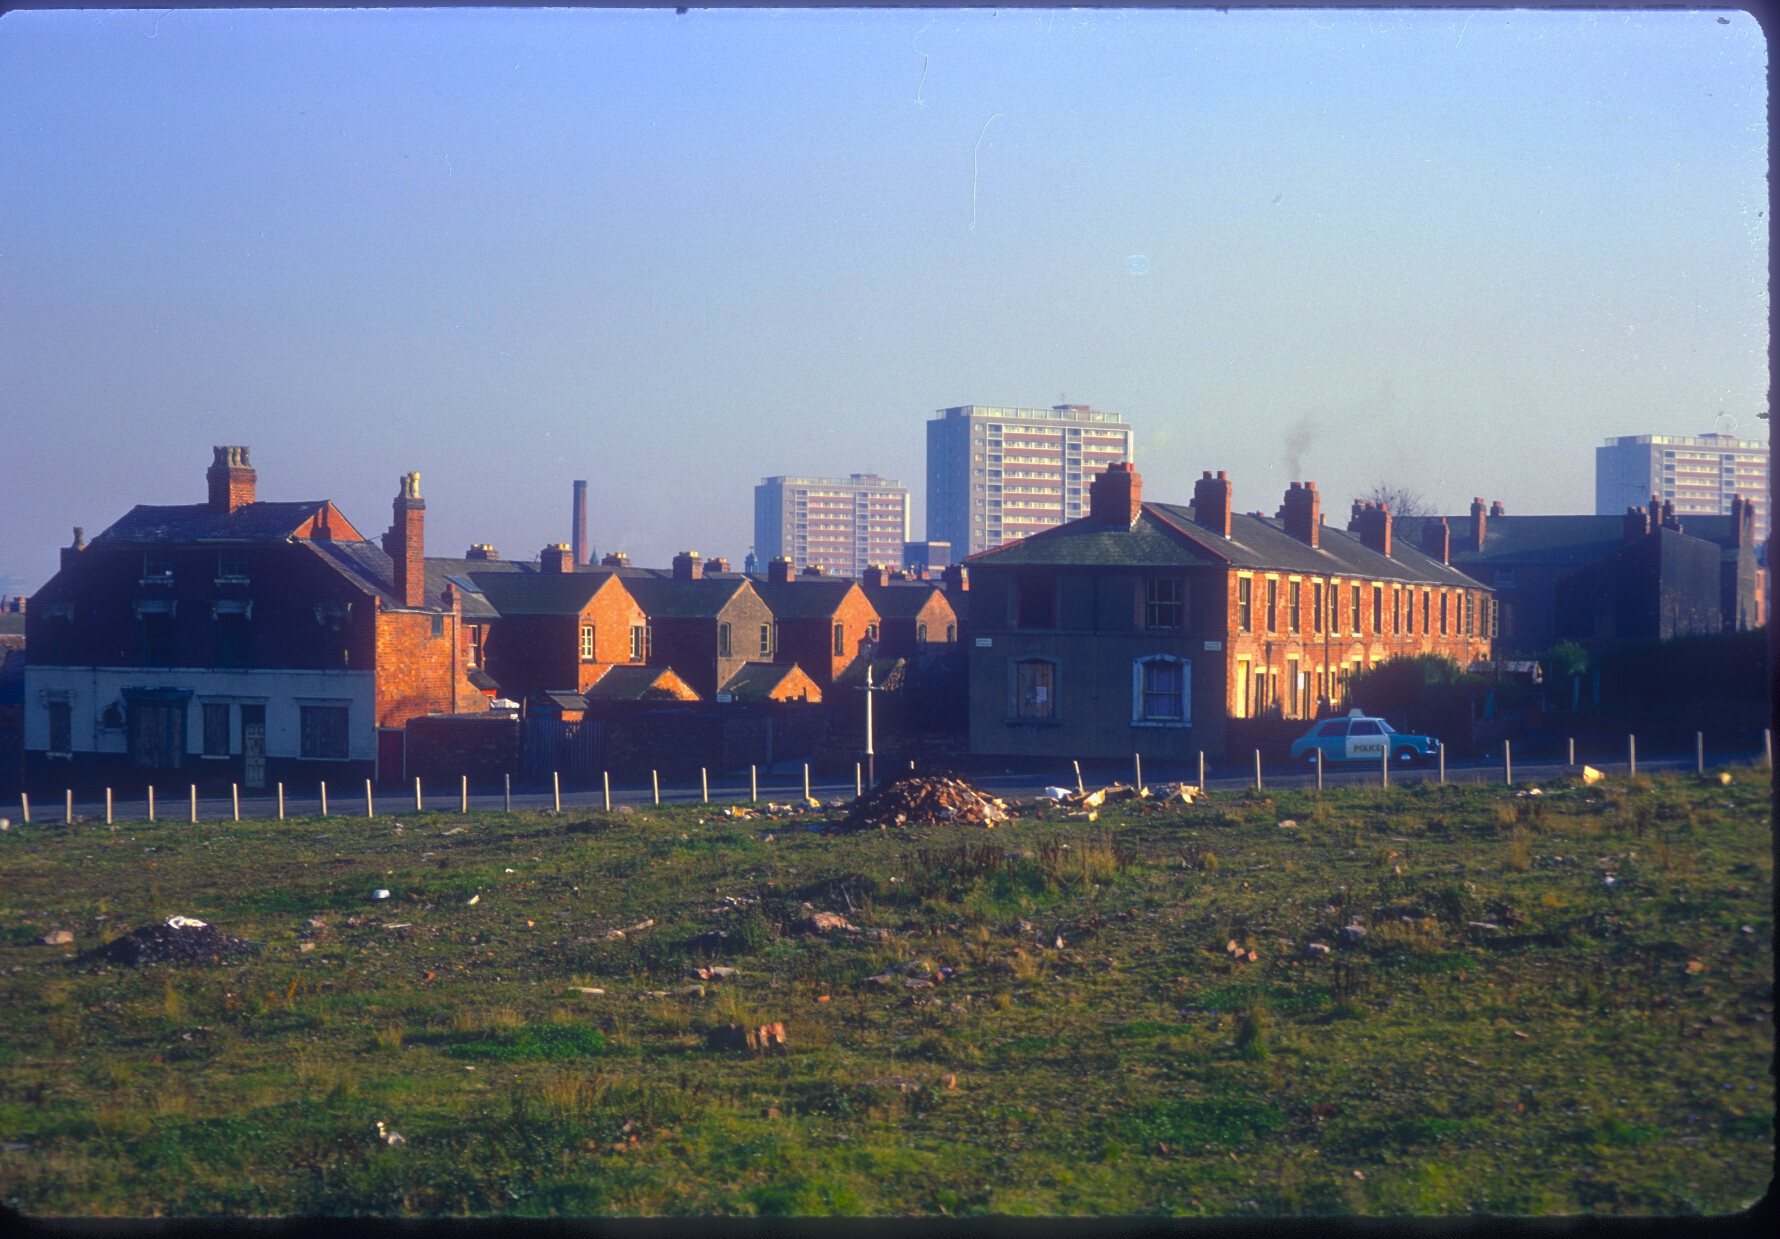 Ladywood old and new terraces - Osler St, Icknield Port Rd. View point from Rotton Park Reservoir Dam. 9th November 1968